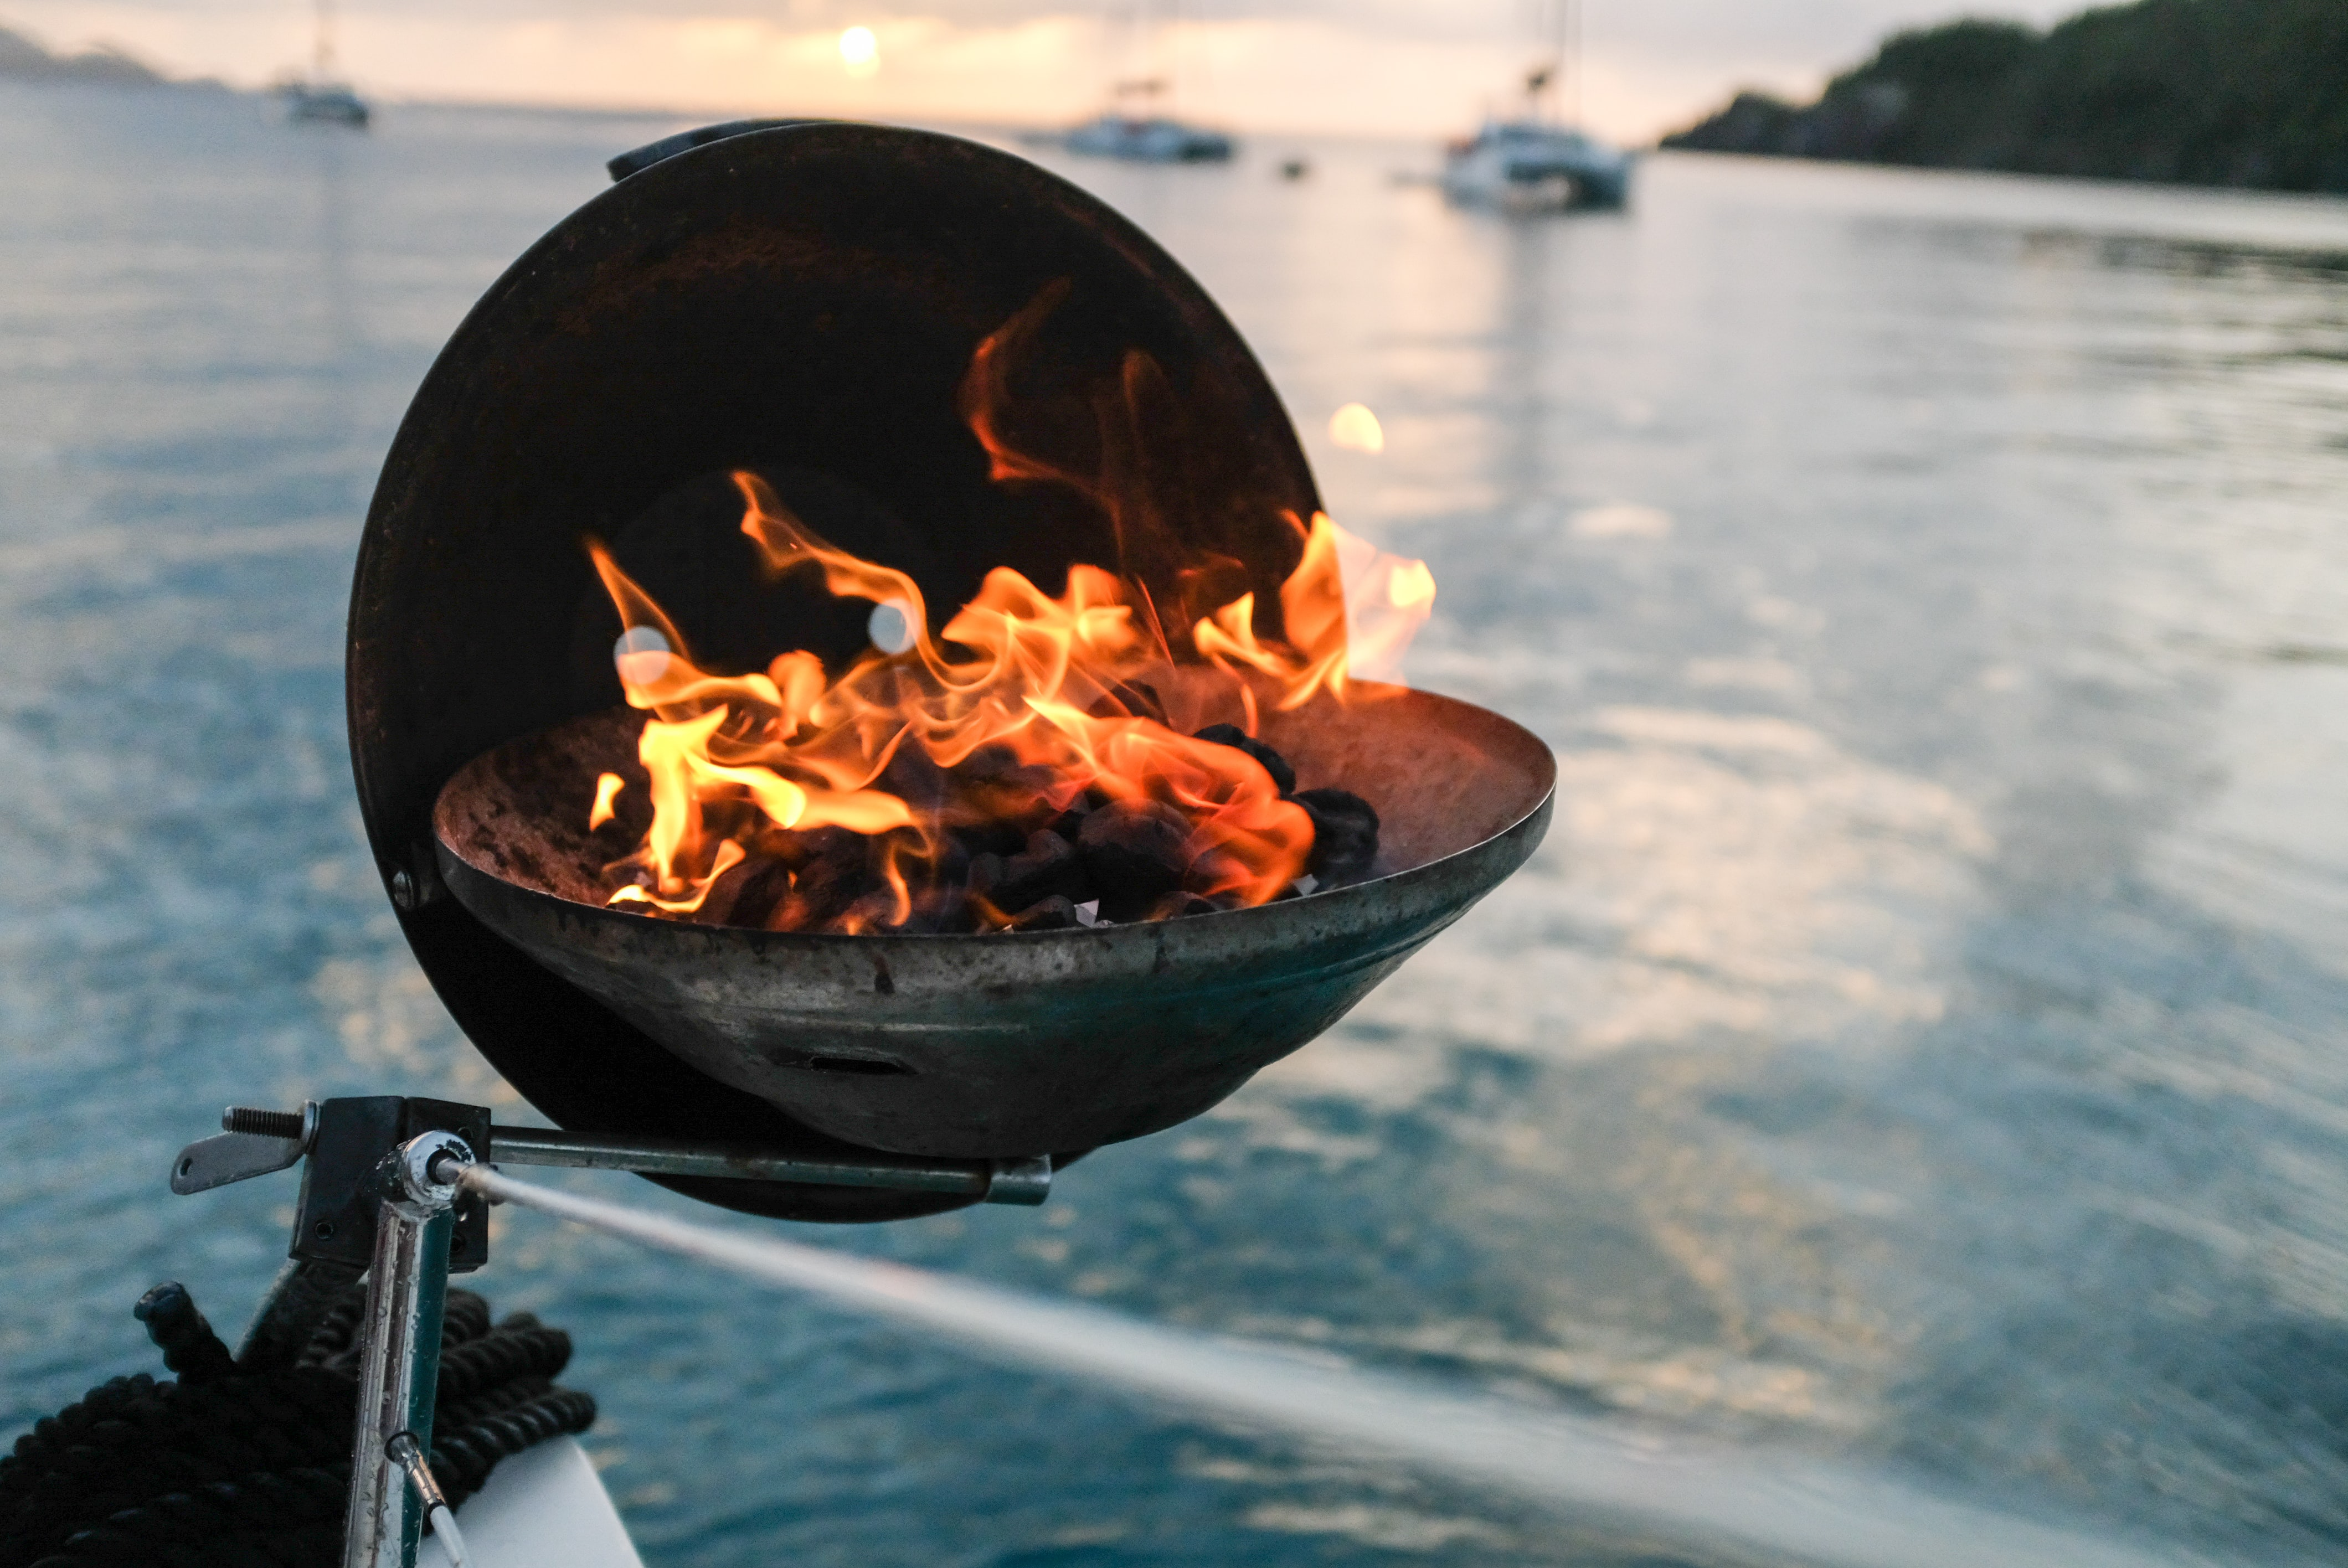 round black fire pit with charcoal on it burning beside calm body of water